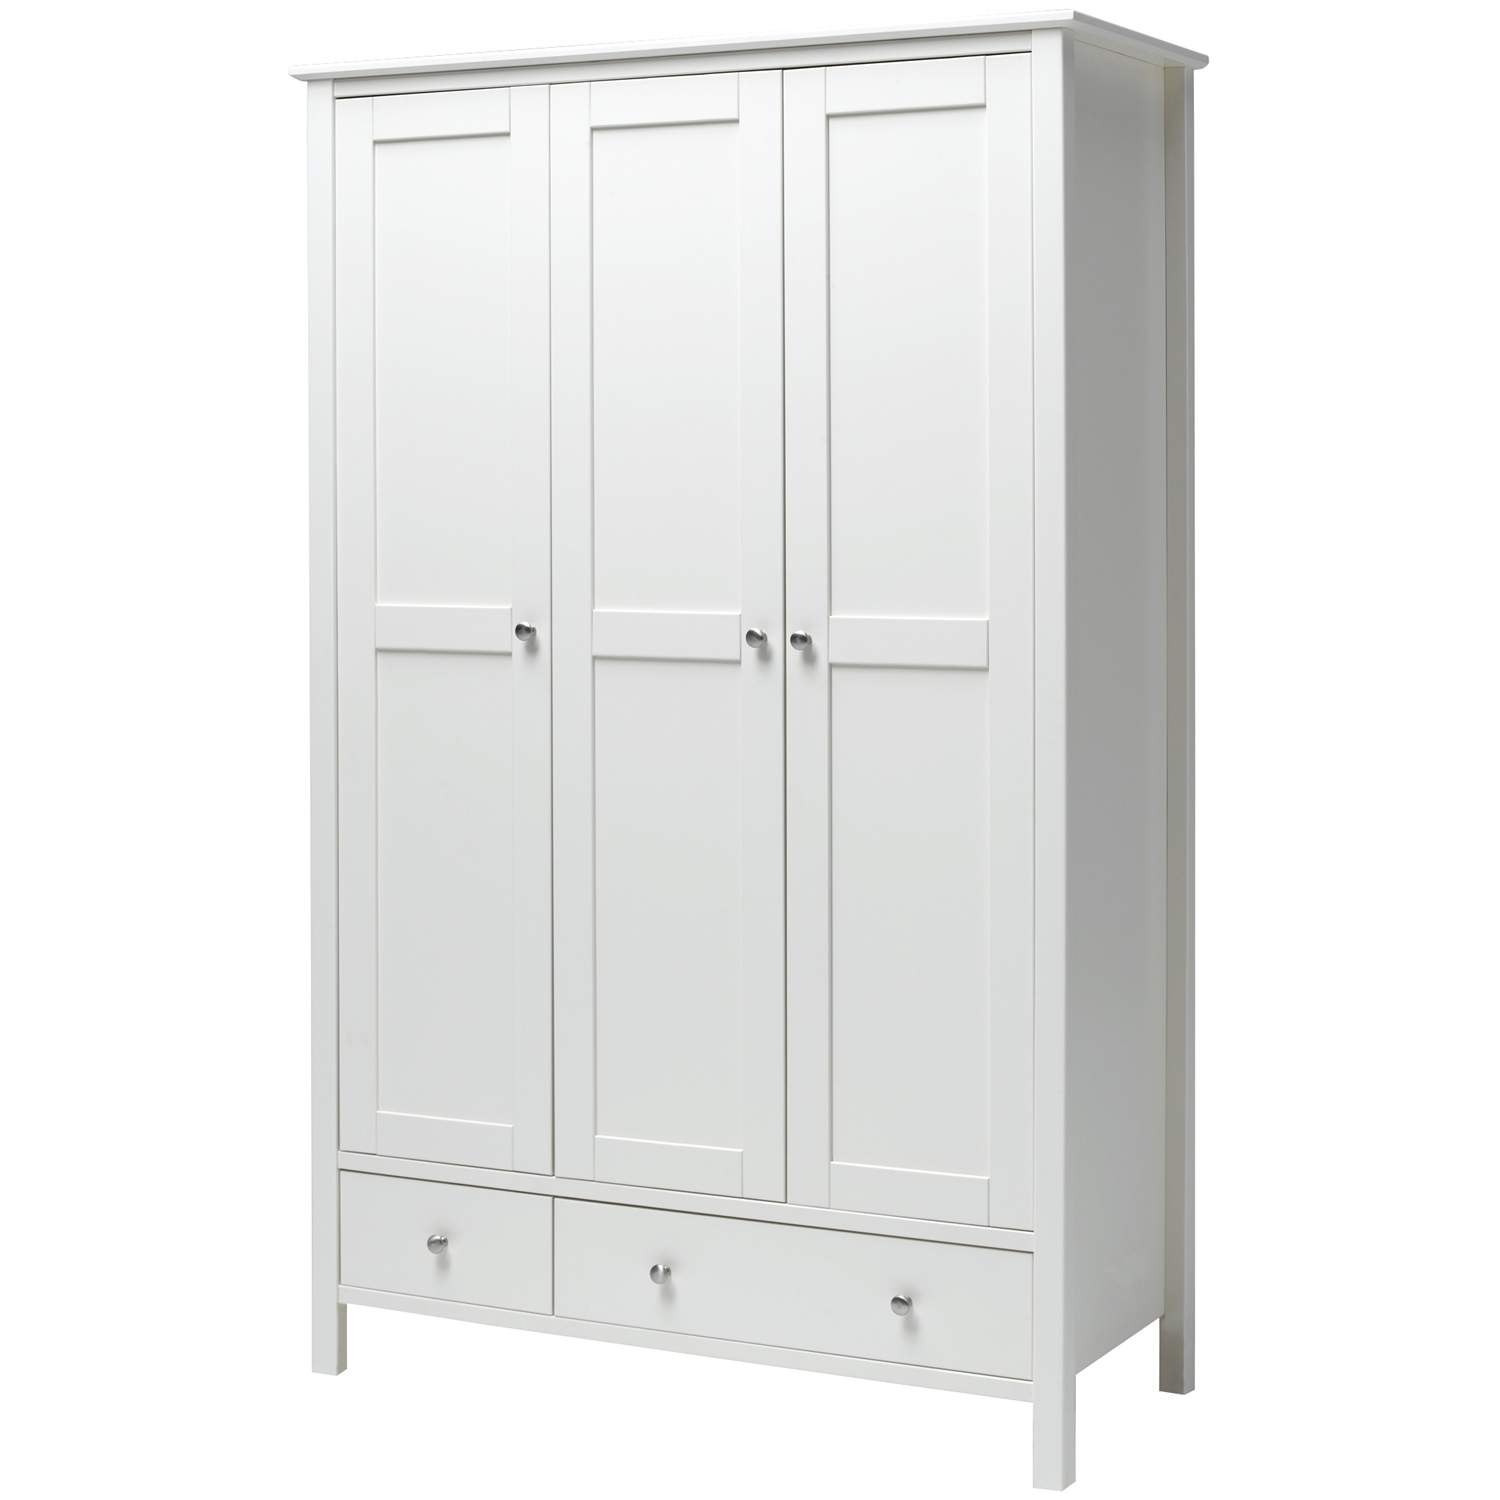 Stockholm 5 Drawer Tall Boy White – Simply Furniture Intended For Recent Tall White Wardrobes (View 9 of 15)